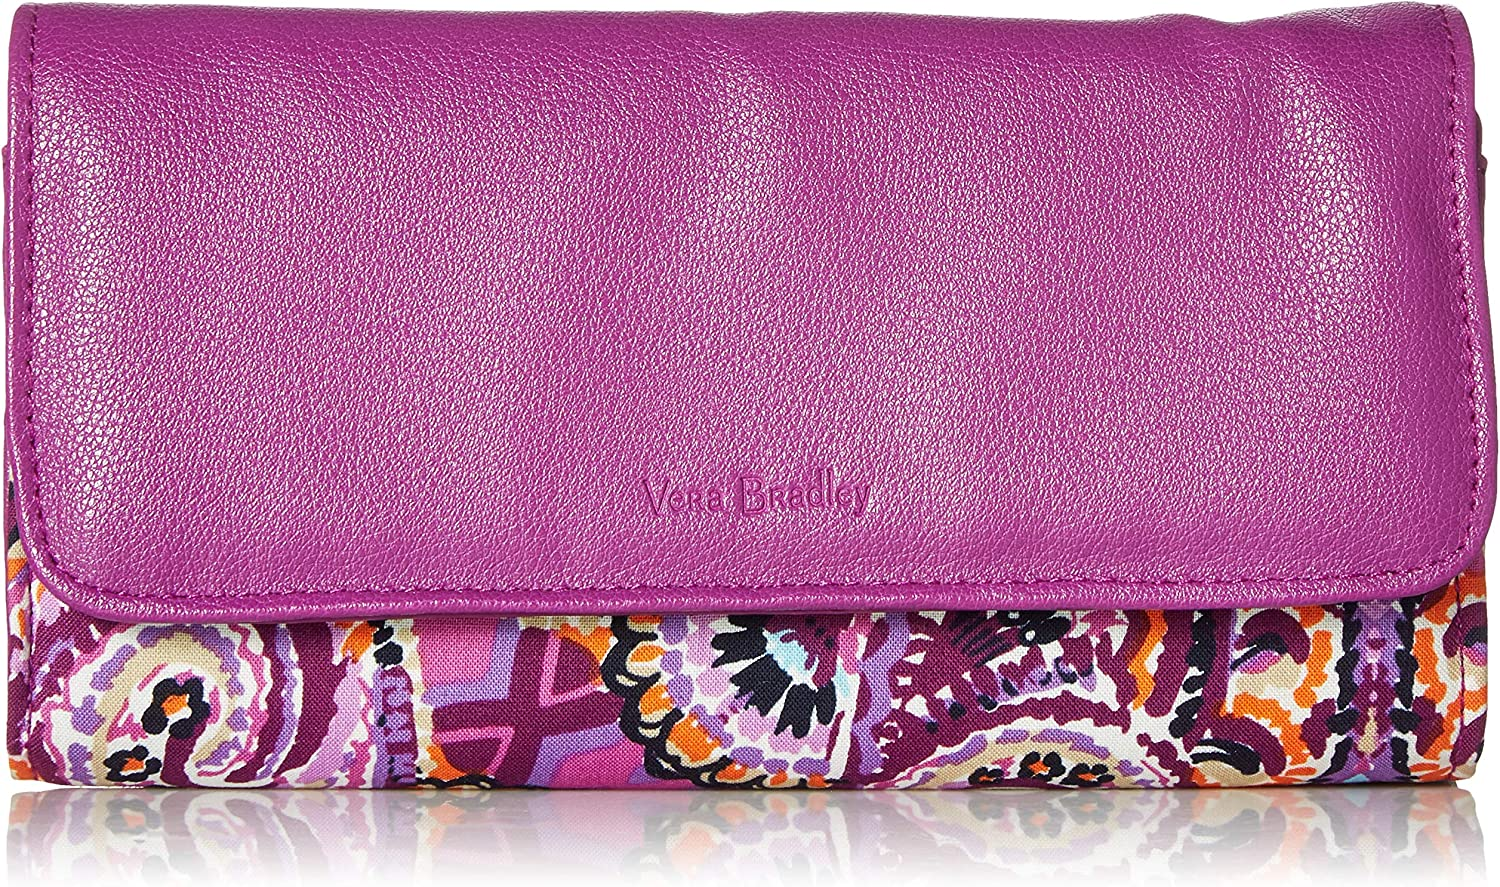 Vera Bradley Women's Protection Signature Mail order cheap RFID Max 65% OFF Wal Audrey Cotton